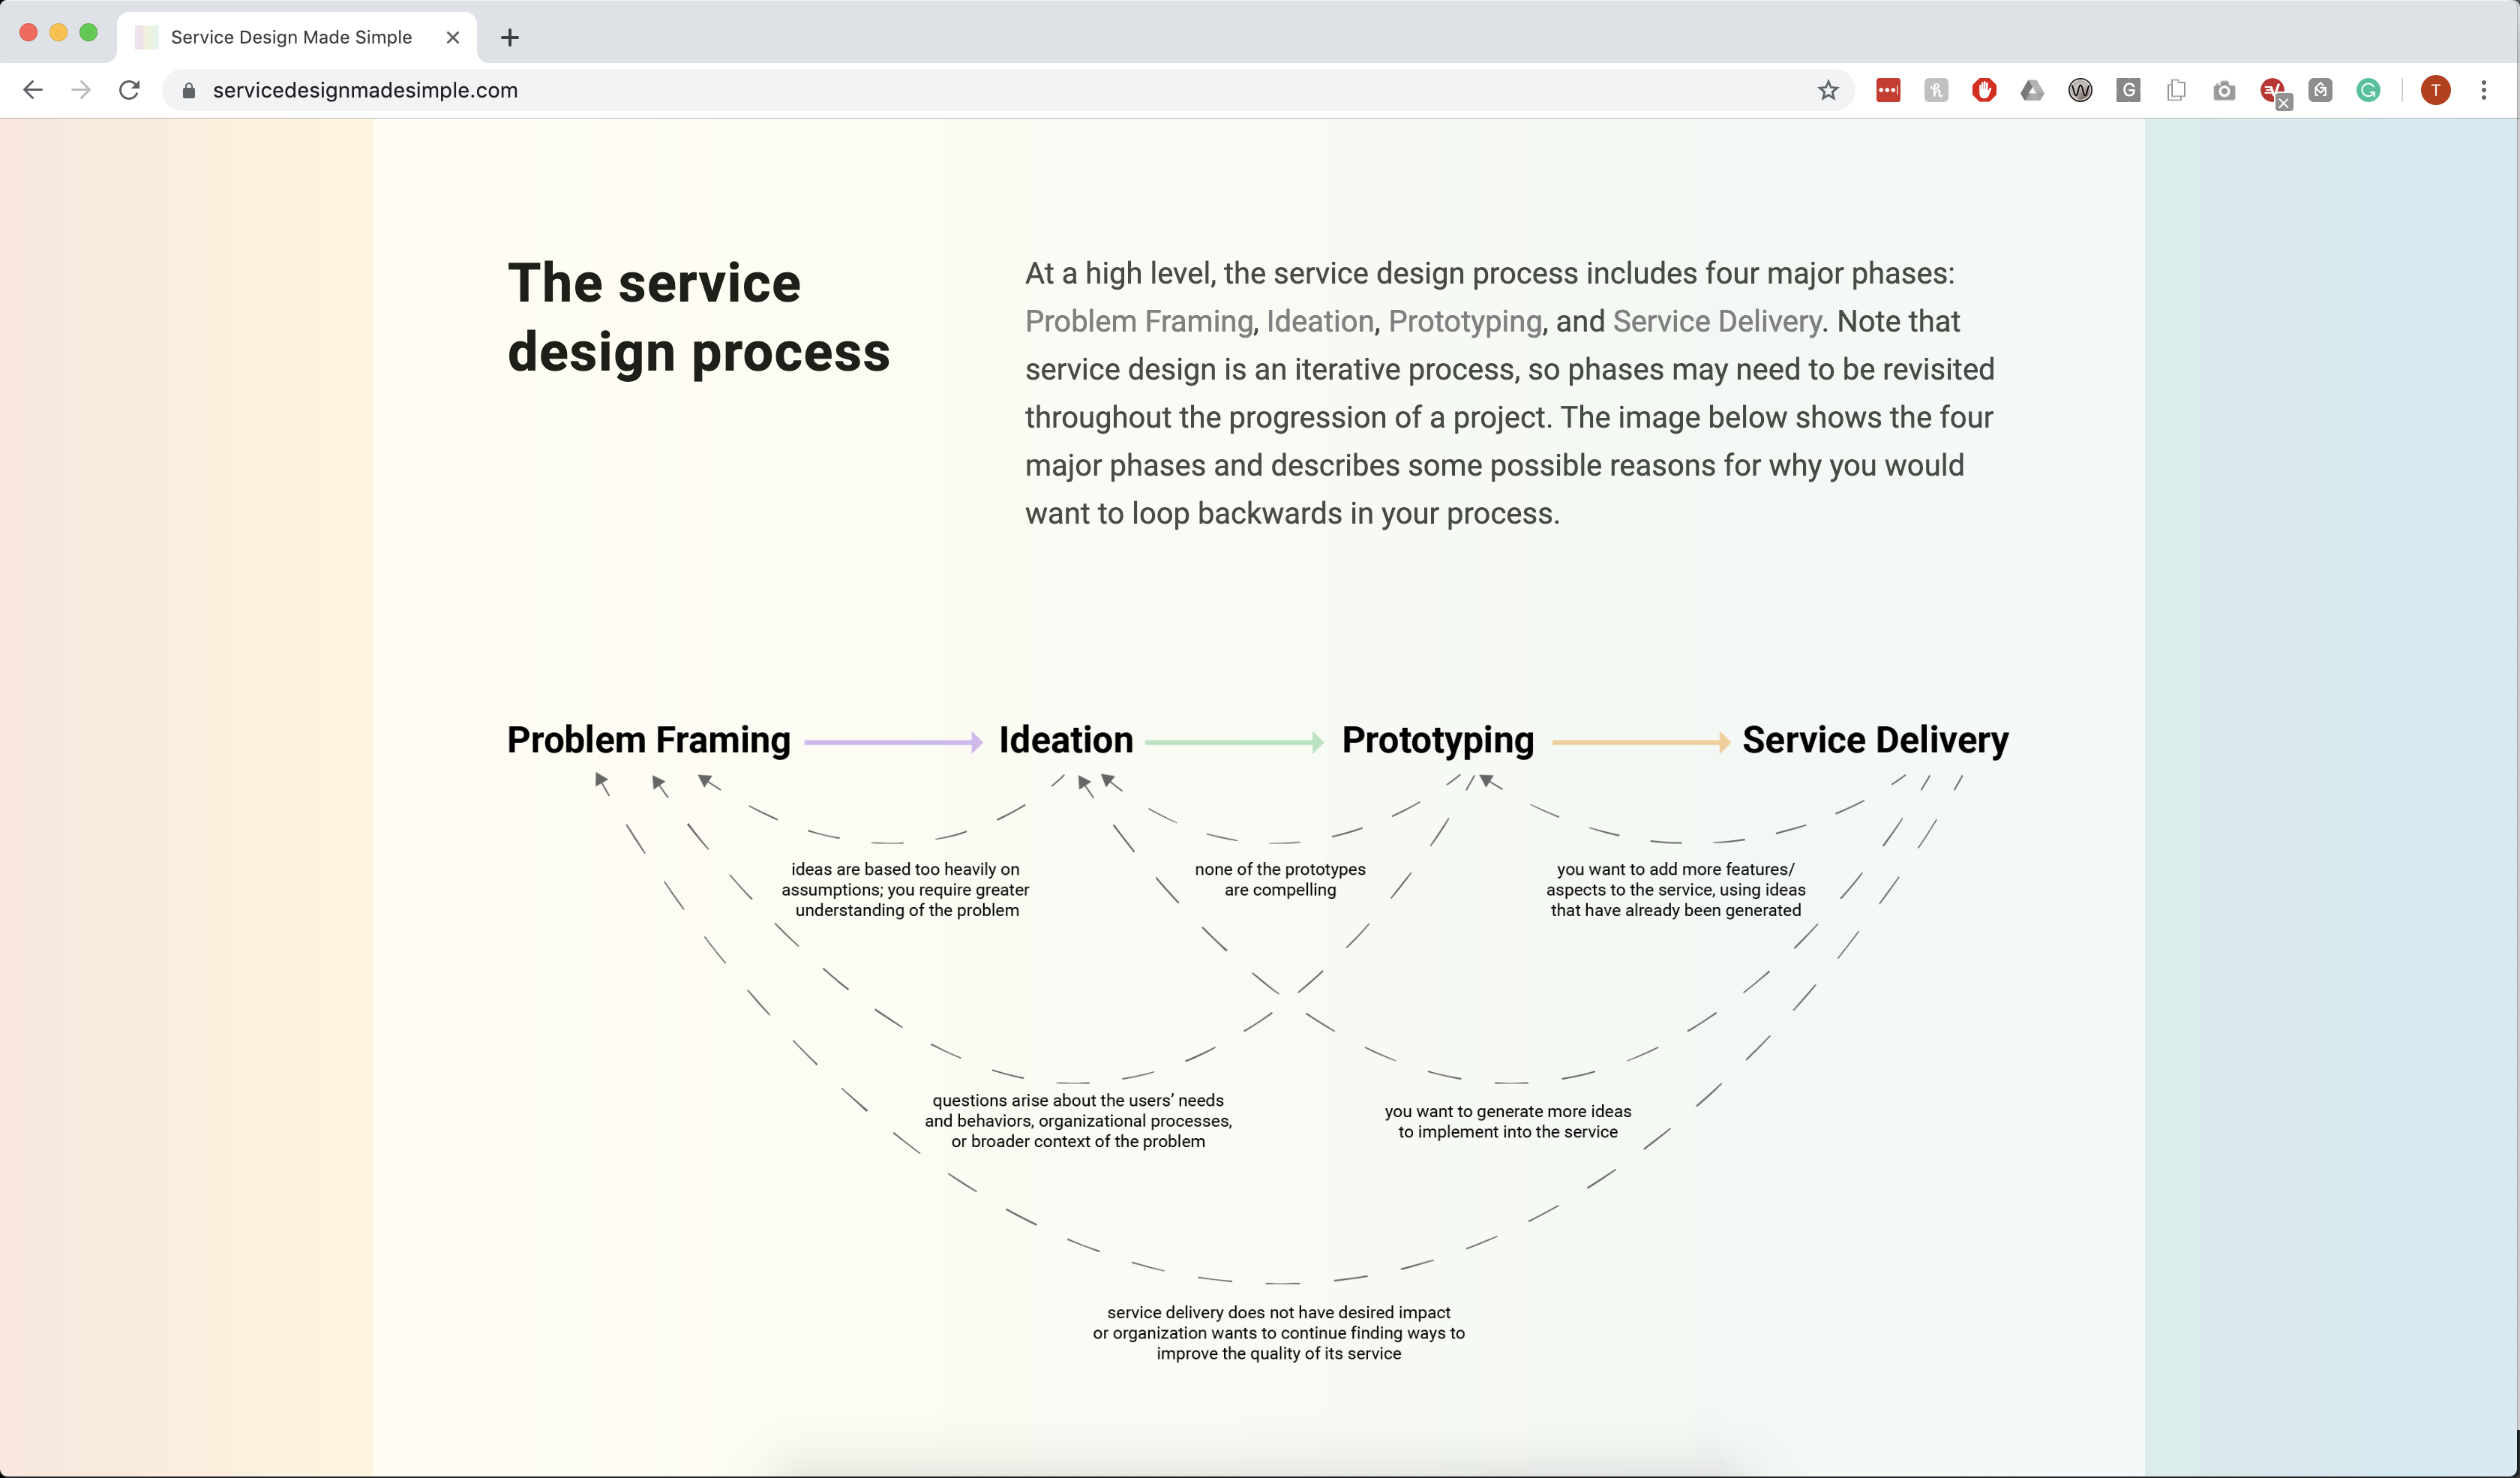 SERVICE DESIGN MADE SIMPLE